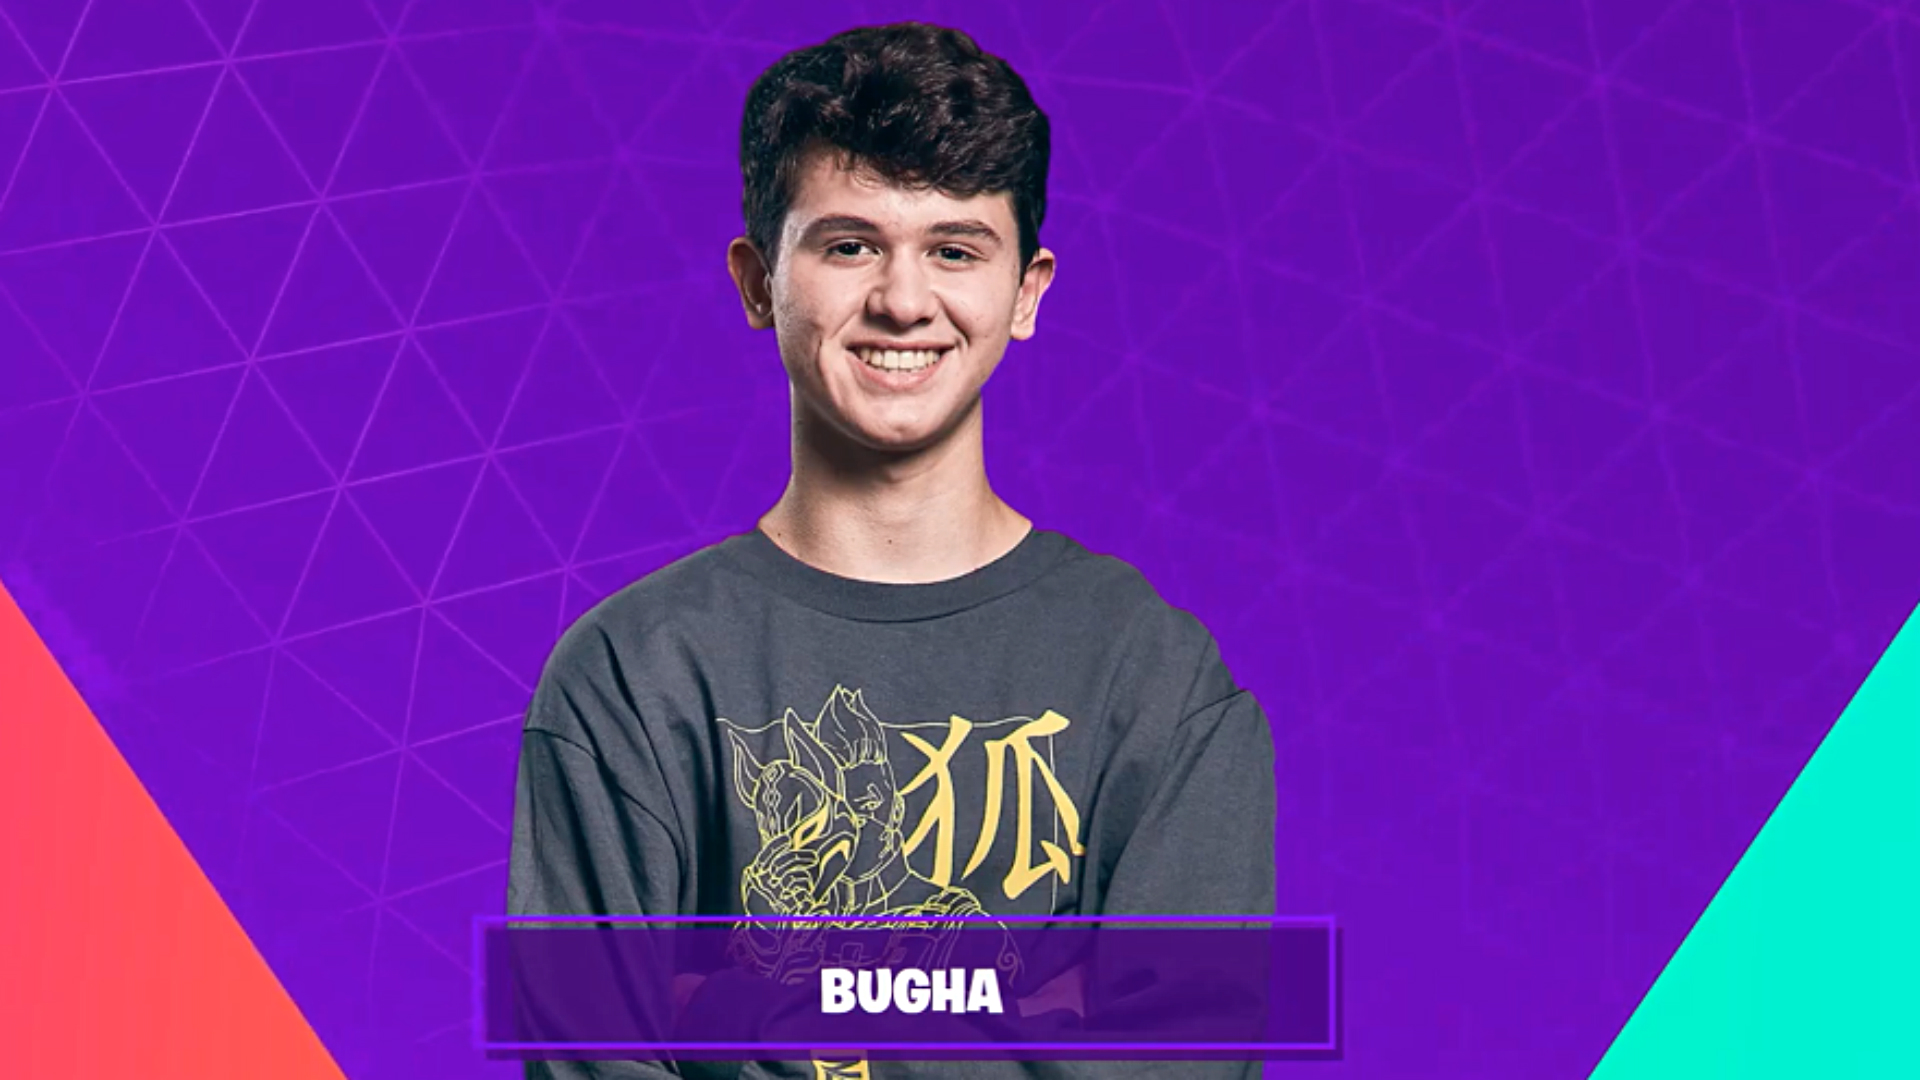 Fortnite World Cup Solos finals results Bugha dominates to win 1920x1080